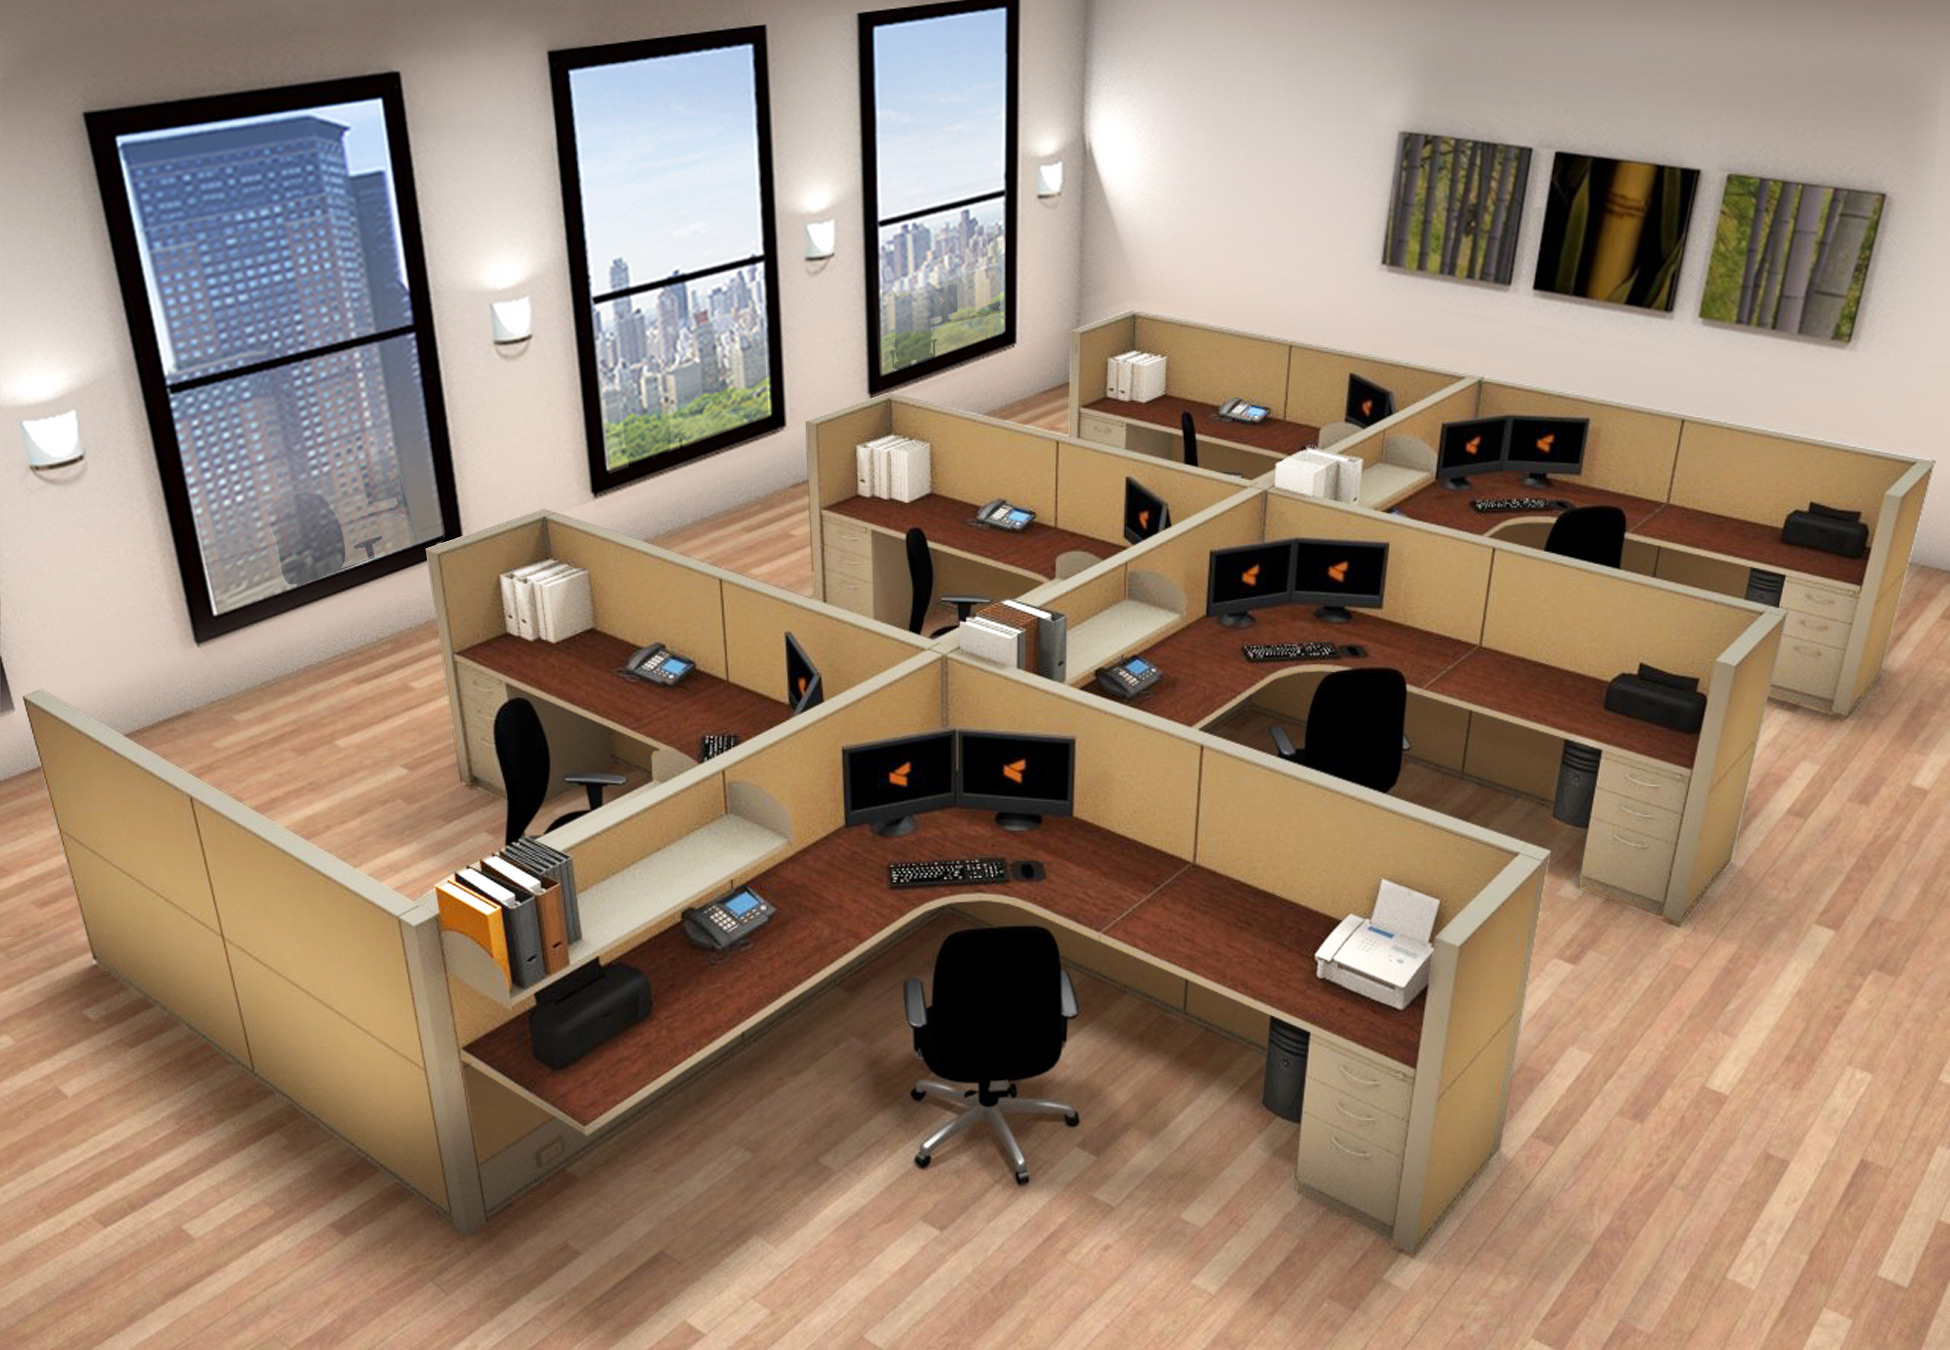 Office Furniture Systems 8x8 Cubicle Workstations